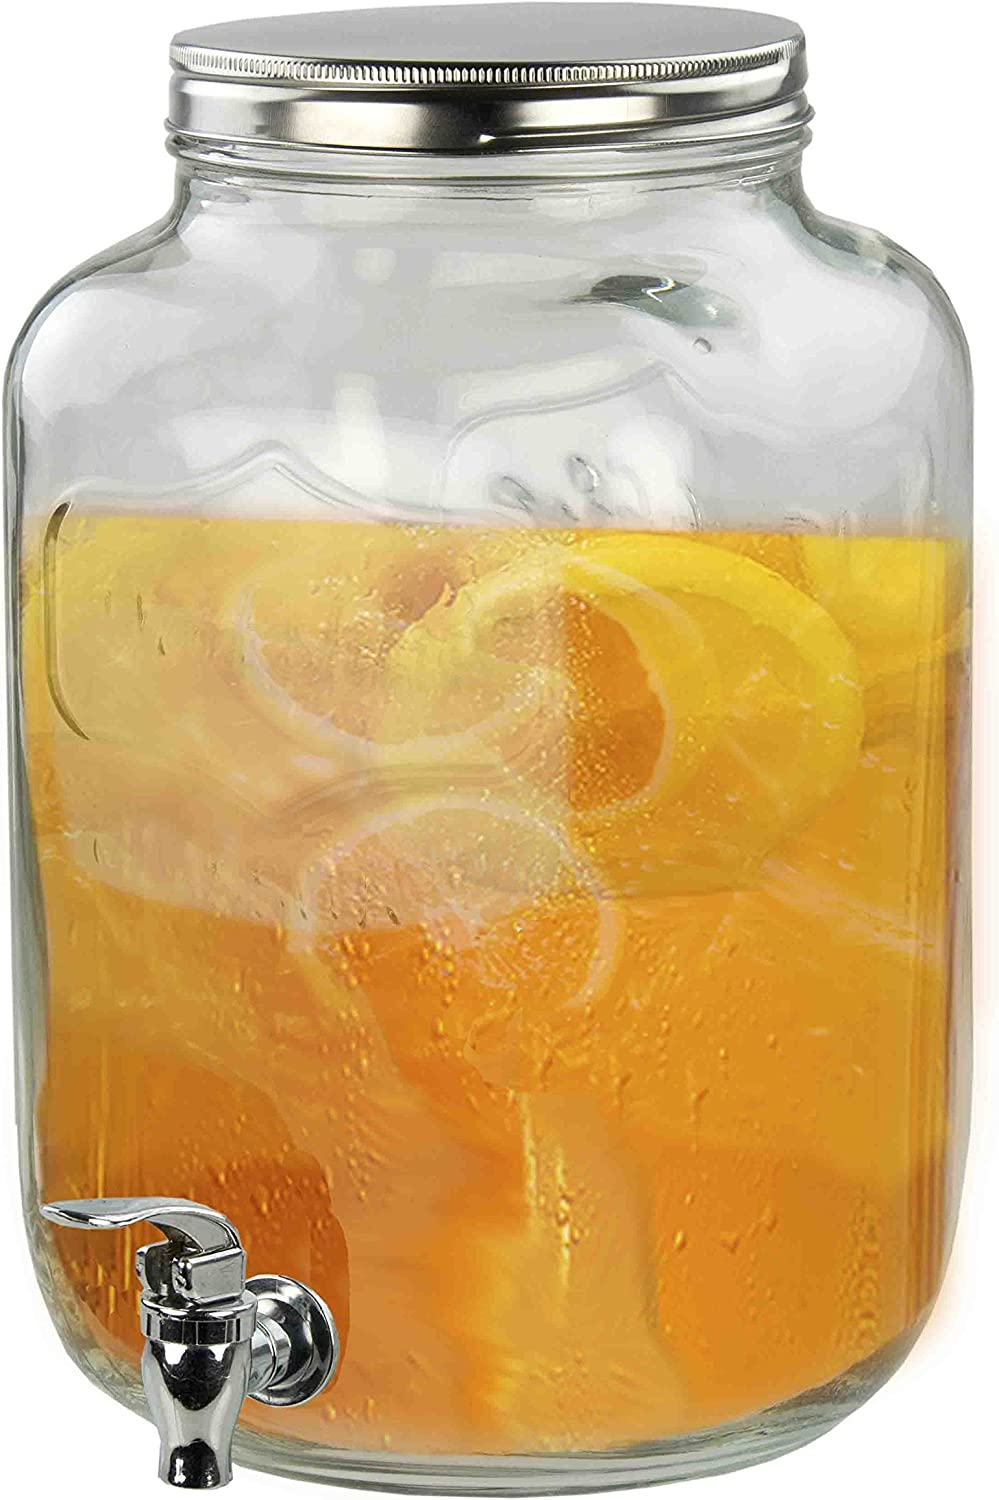 Home Basics 8 Liter Leak-Proof Glass Beverage Dispenser with Stainless Steel Lid for Home and Kitchen Party Entertainment Glassware for Water, Juice, Beer, Punch, Iced Tea or Cold Drink, Cle, 8 L